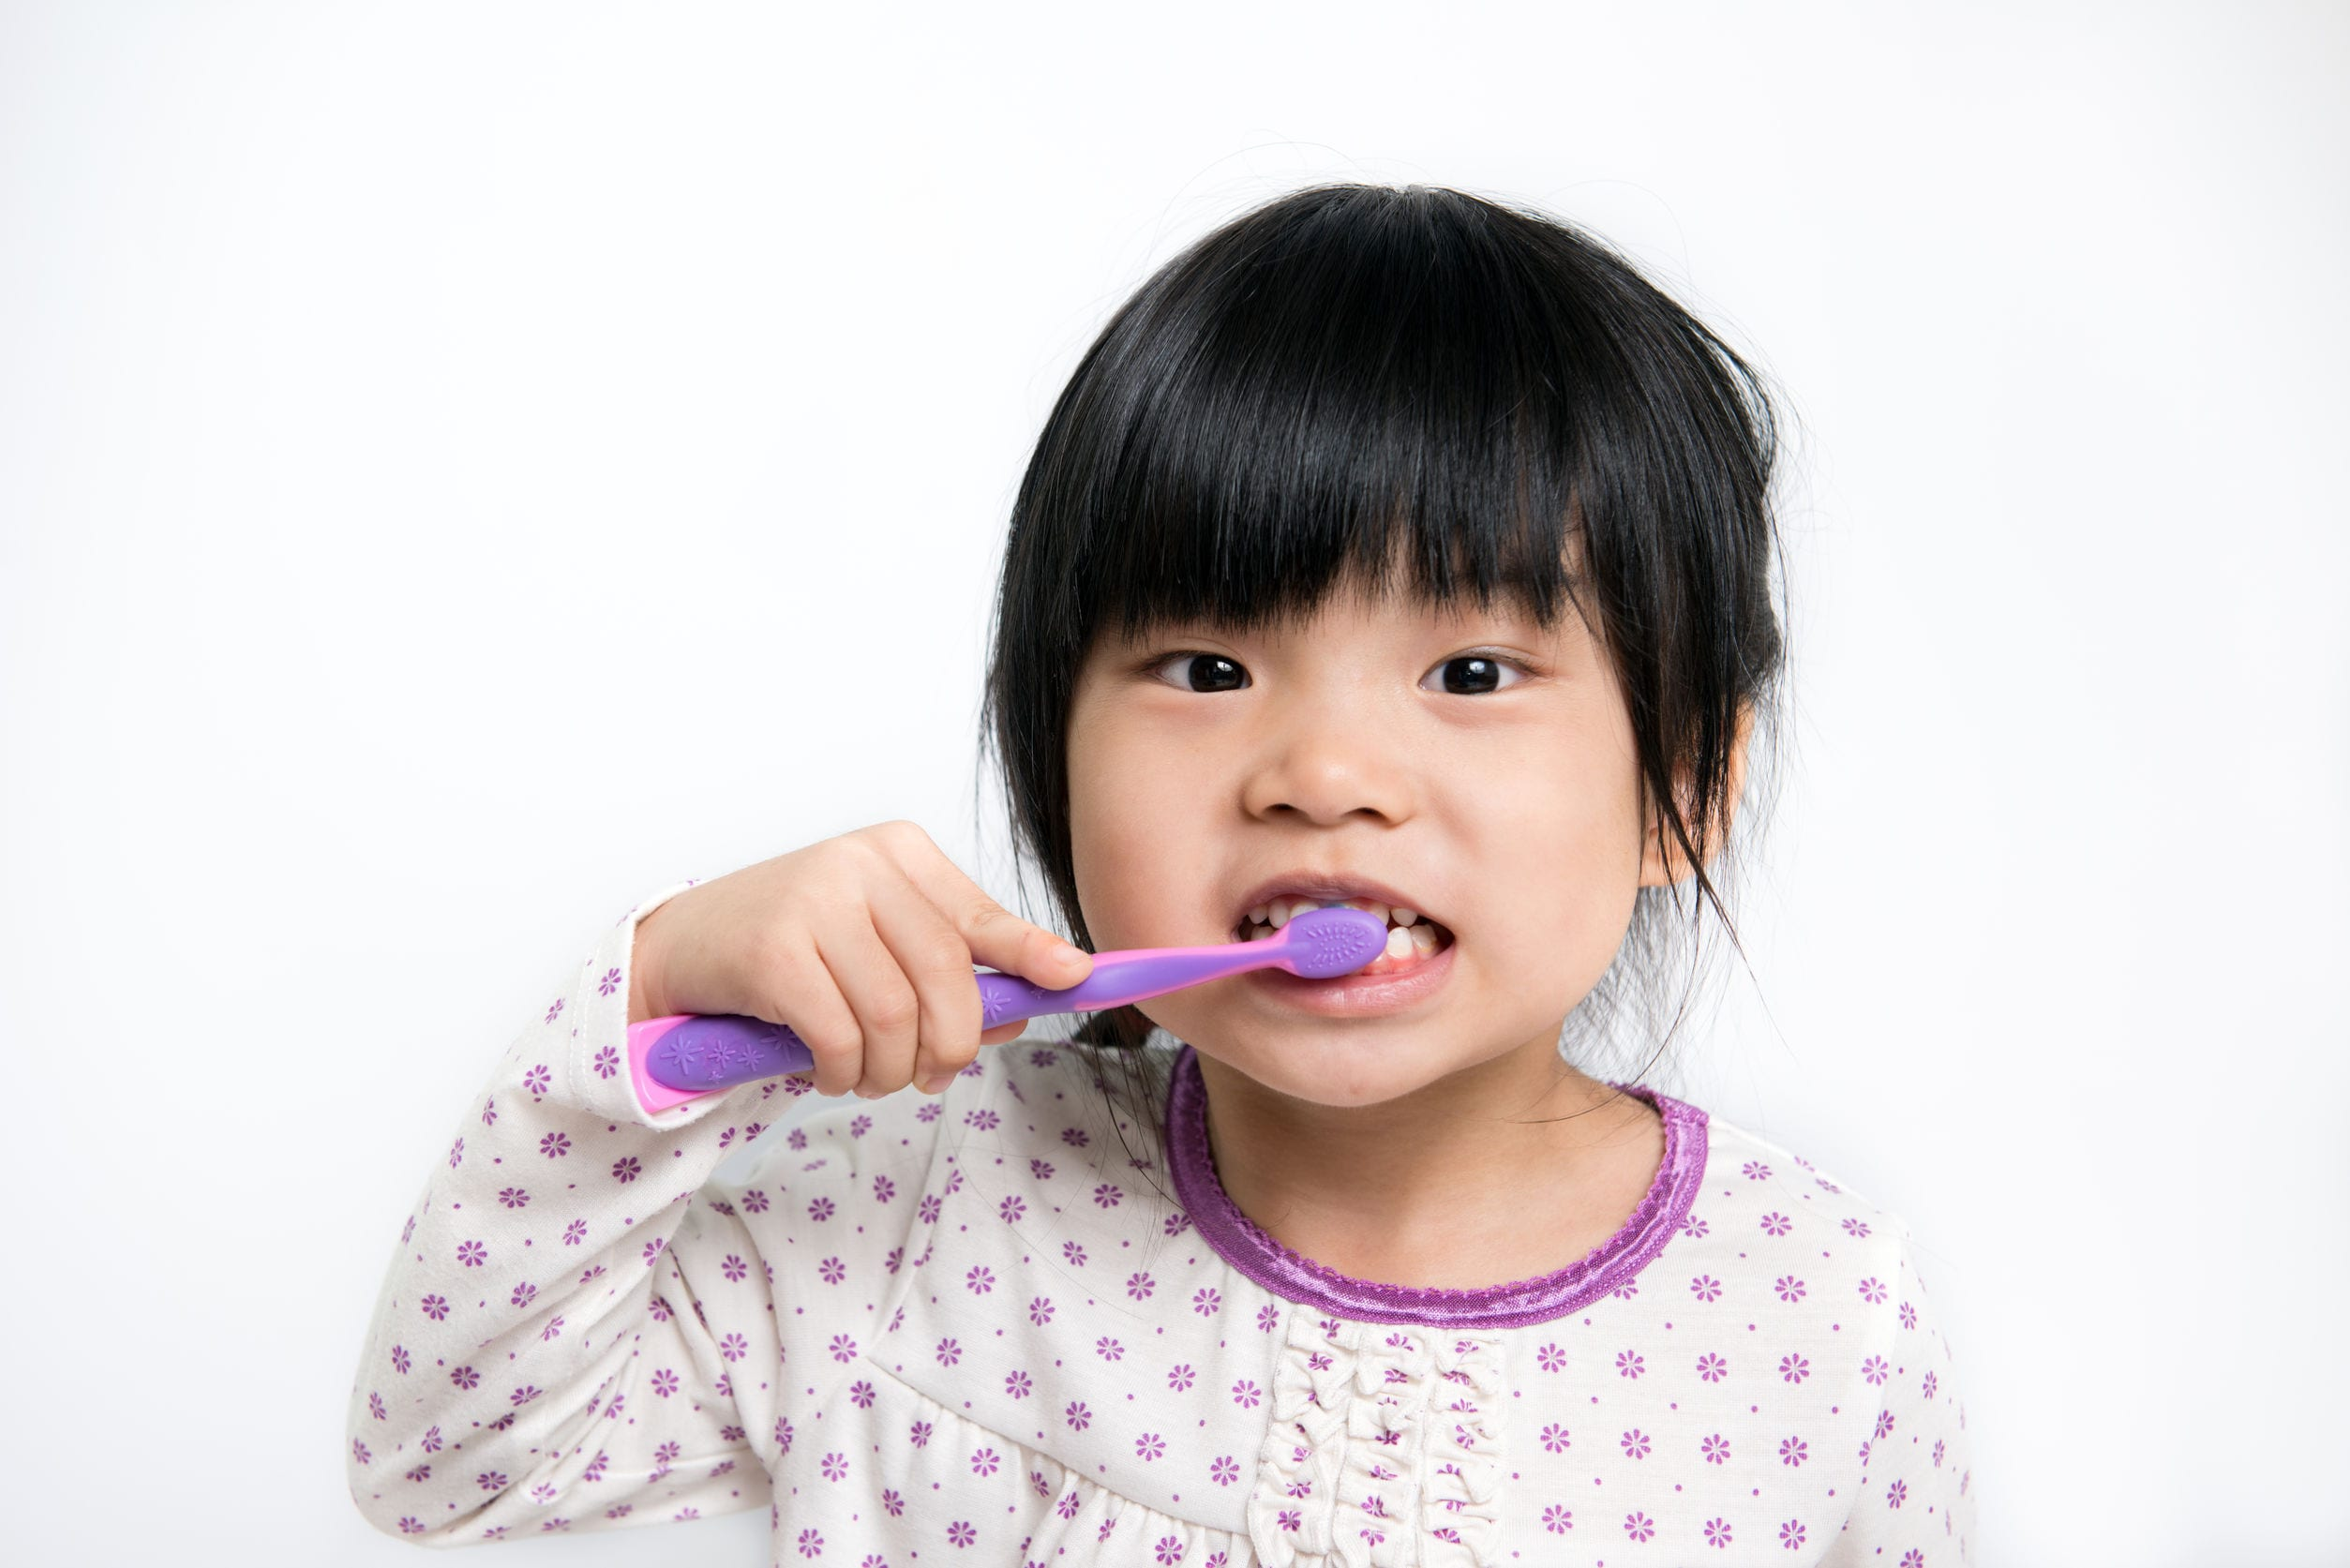 Can You Raise a Cavity Free Child?